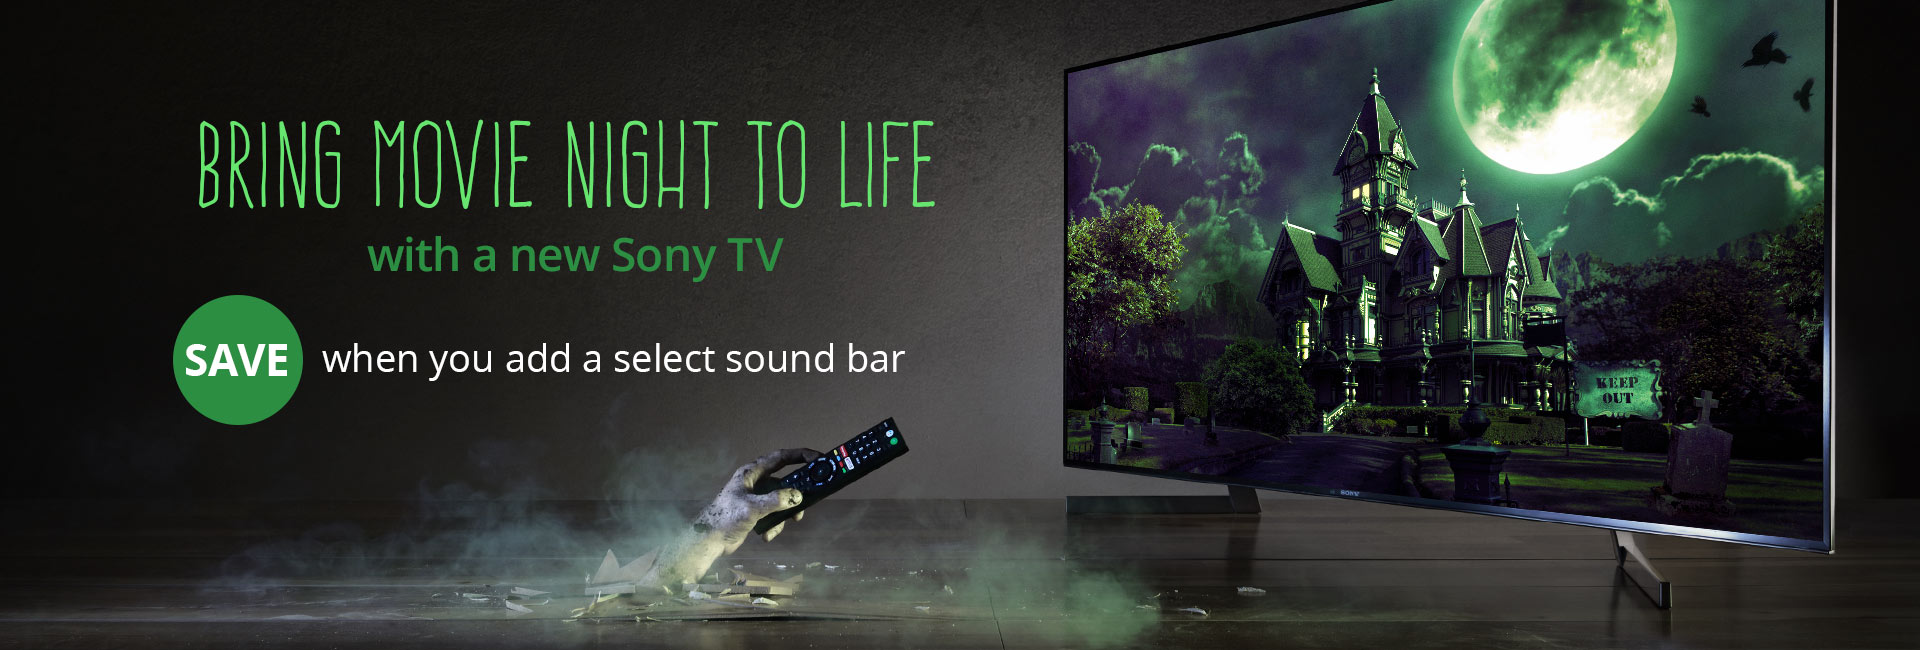 Bring movie night to life with a new Sony TV